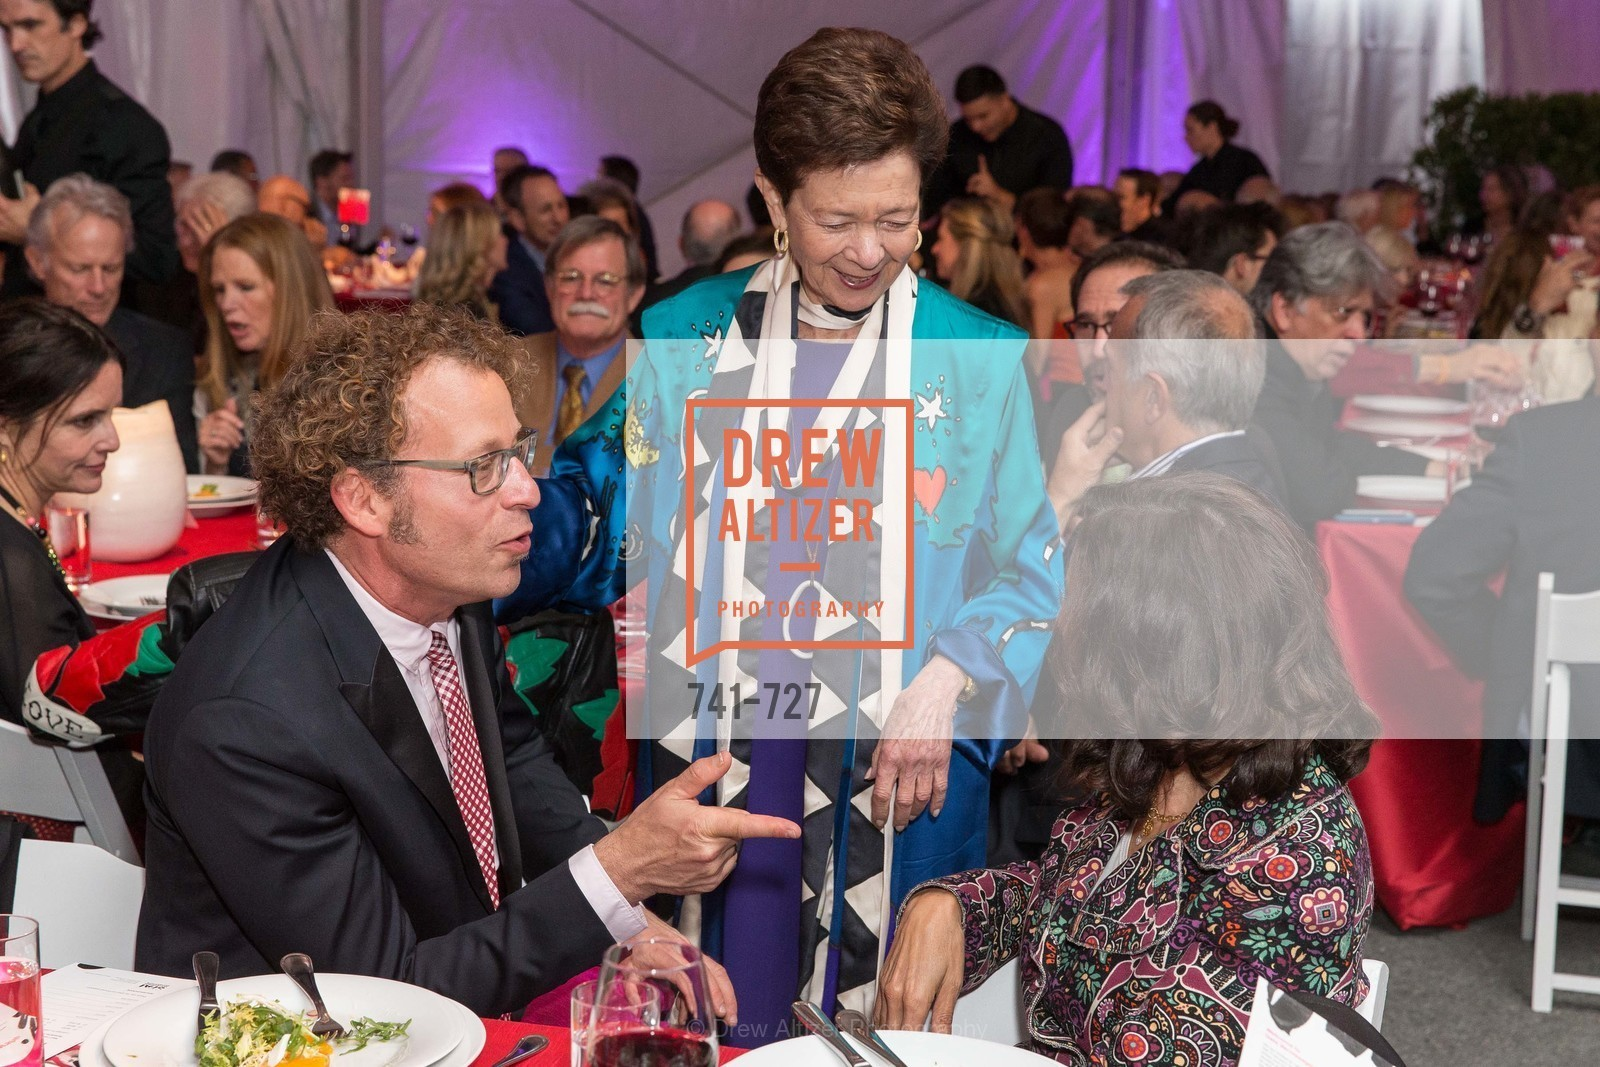 Ken Goldberg, Cissie Swig, Darian Swig, SAN FRANCISCO ART INSTITUTE Gala Honoring Art Visionary and Advocate ROSELYNE CHROMAN SWIG, US, May 13th, 2015,Drew Altizer, Drew Altizer Photography, full-service agency, private events, San Francisco photographer, photographer california